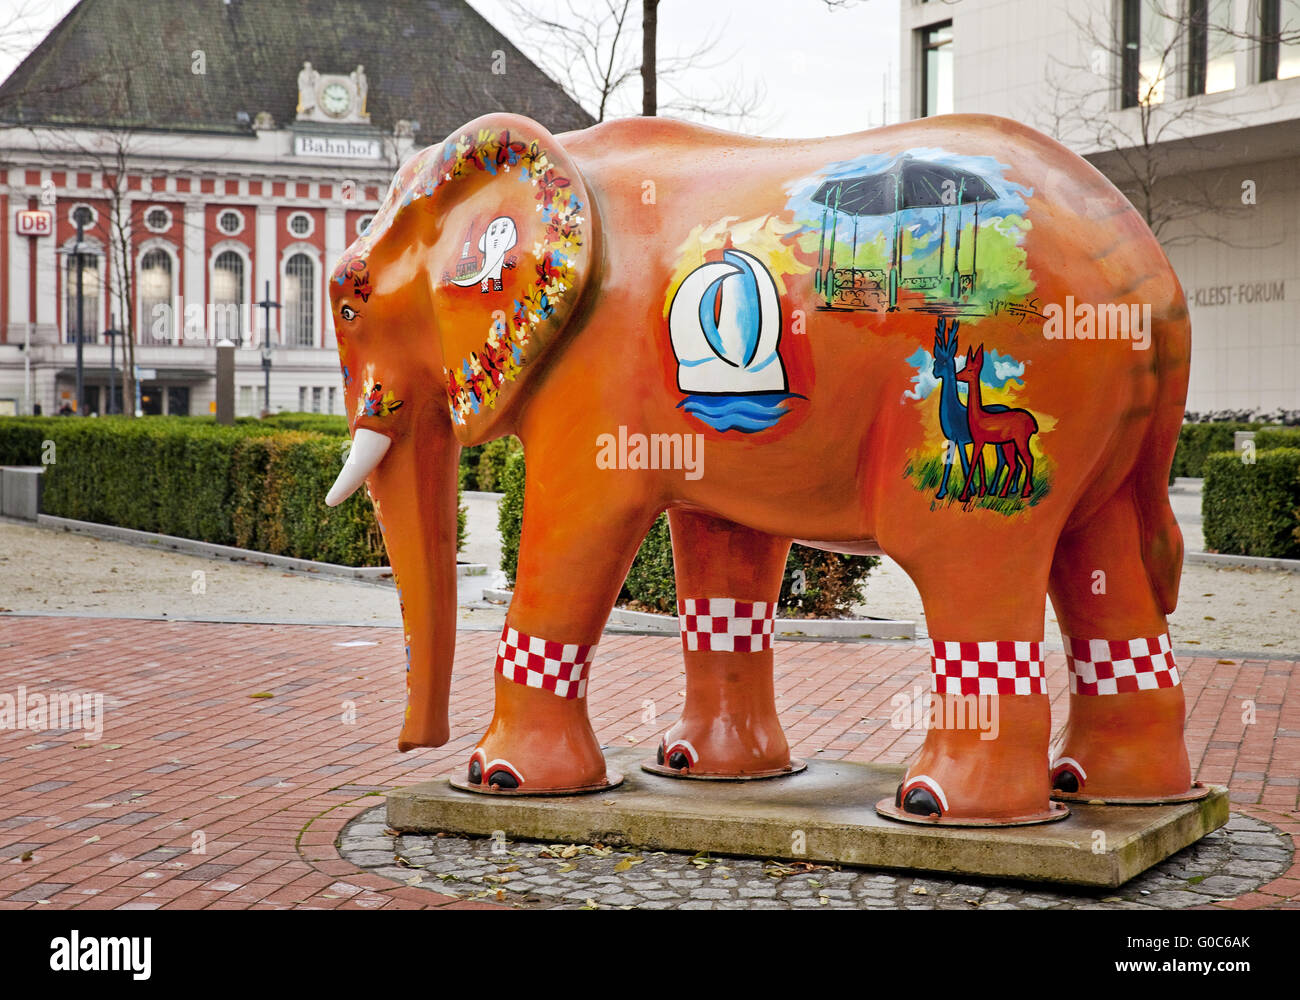 Elephant sculpture, Hamm, Germany - Stock Image